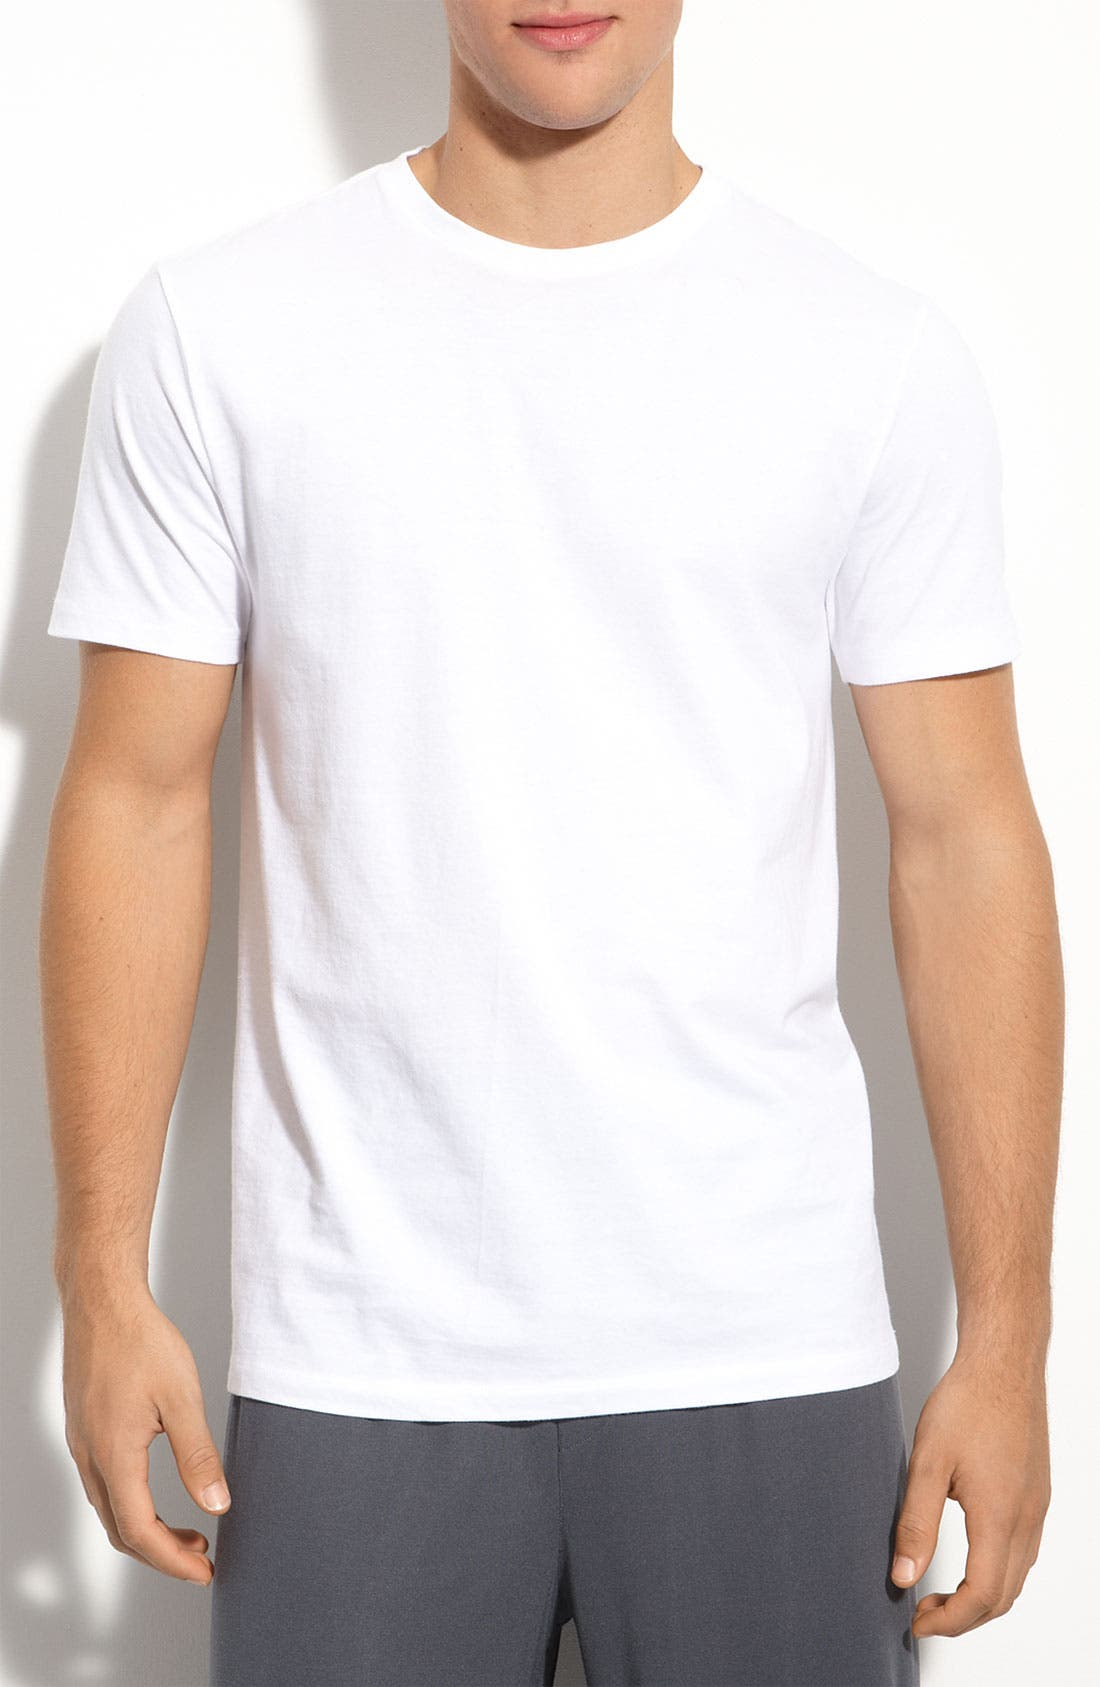 Main Image - Michael Kors Crewneck Shirt (3-Pack)